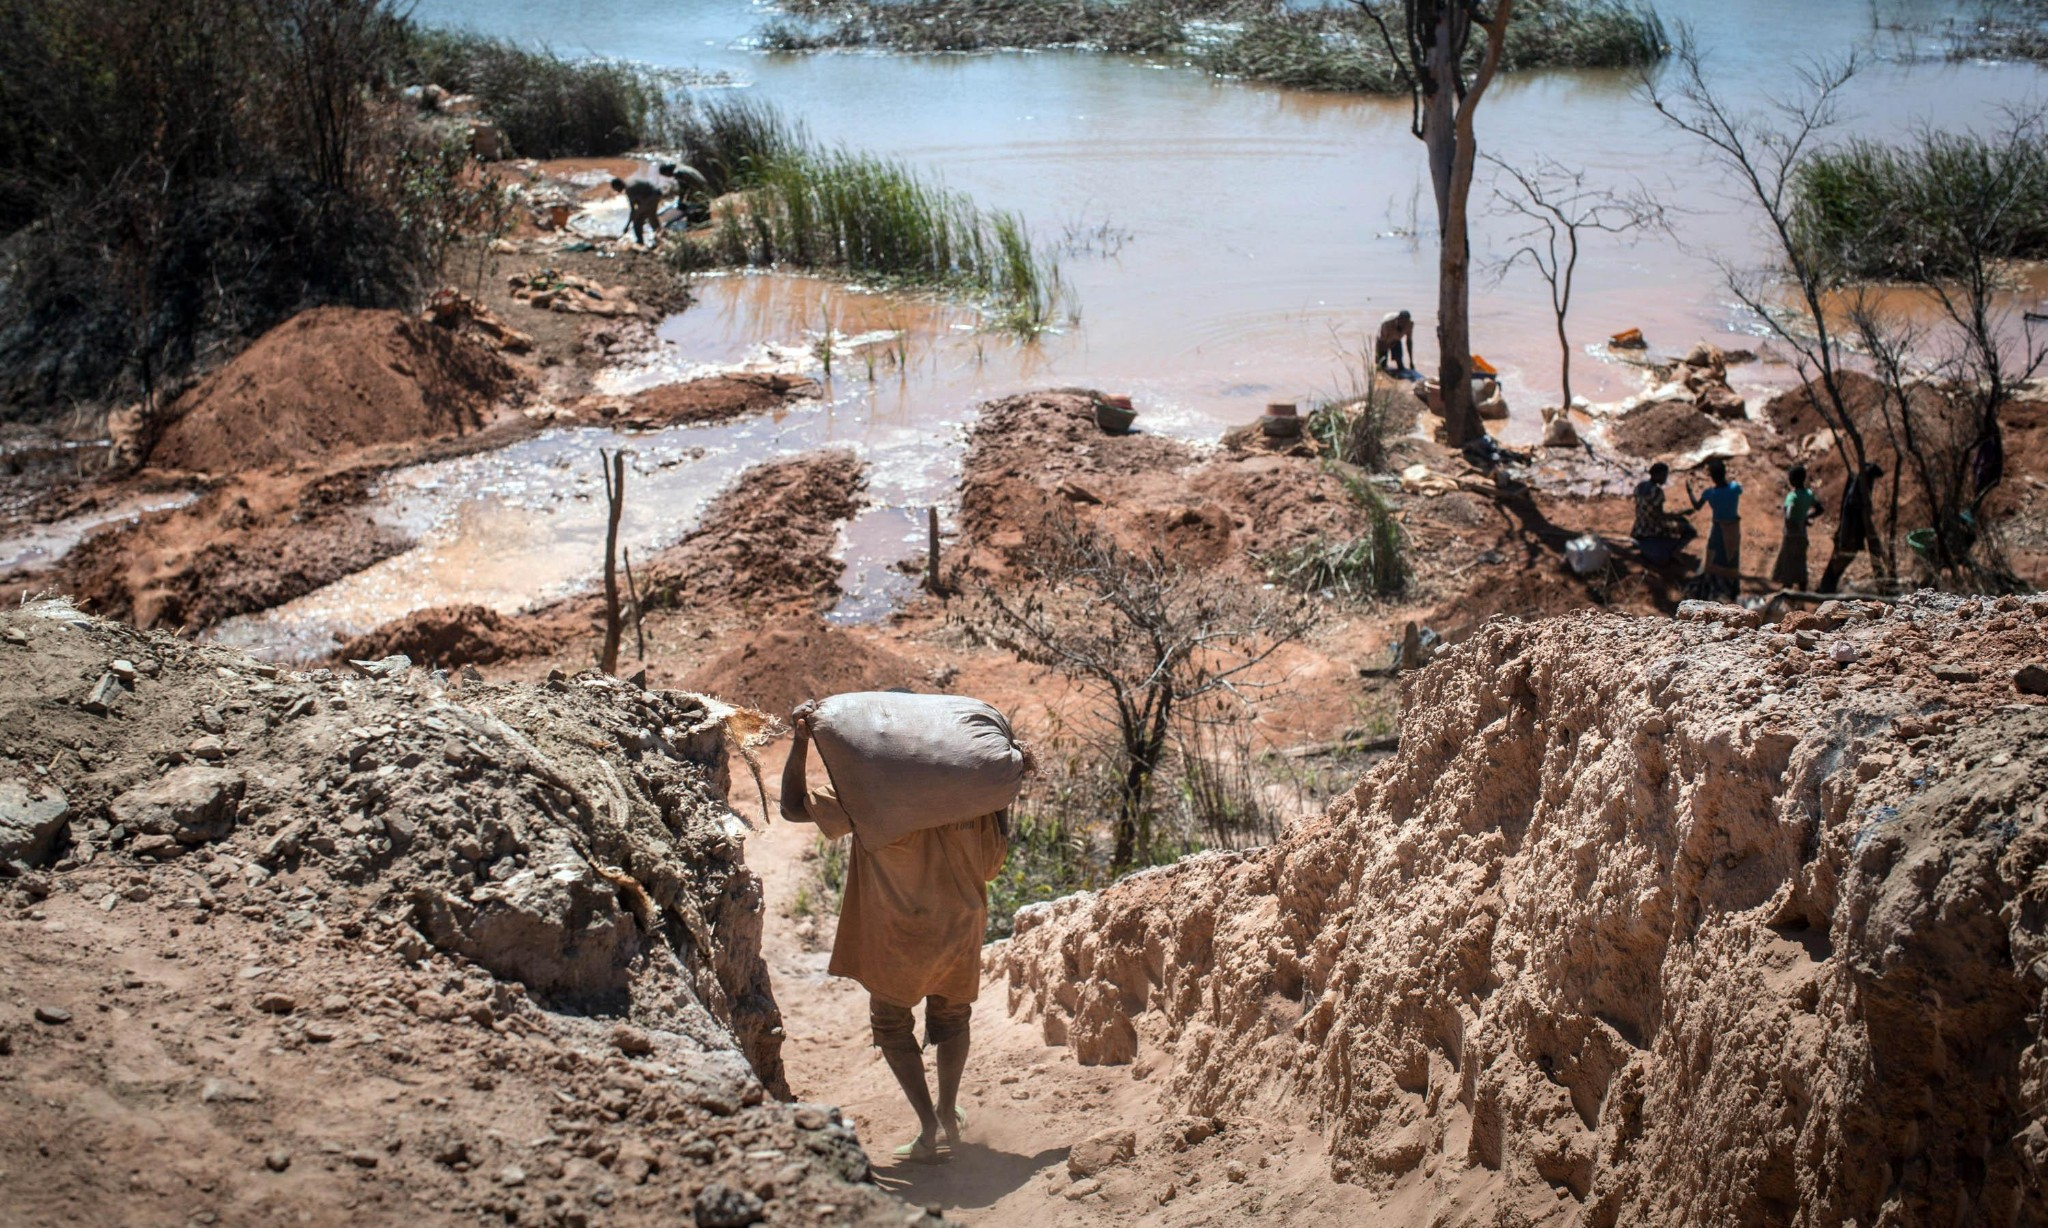 Children as young as seven mining cobalt used in smartphones, says Amnesty